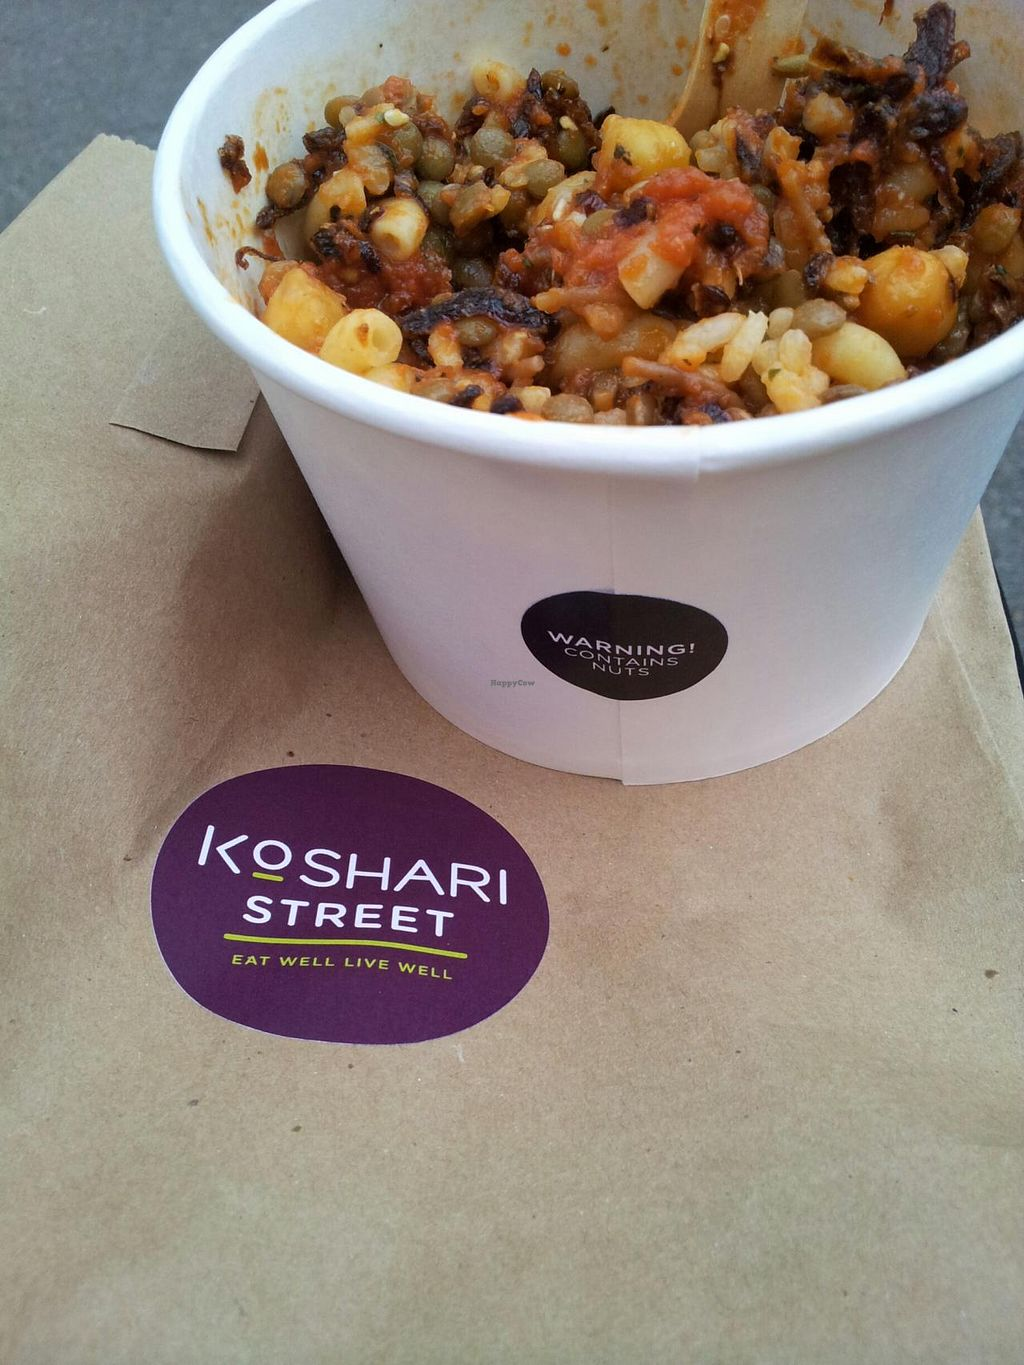 "Photo of Koshari Street  by <a href=""/members/profile/GiraffeGirl"">GiraffeGirl</a> <br/>Koshari mixed together <br/> May 2, 2014  - <a href='/contact/abuse/image/39033/69135'>Report</a>"